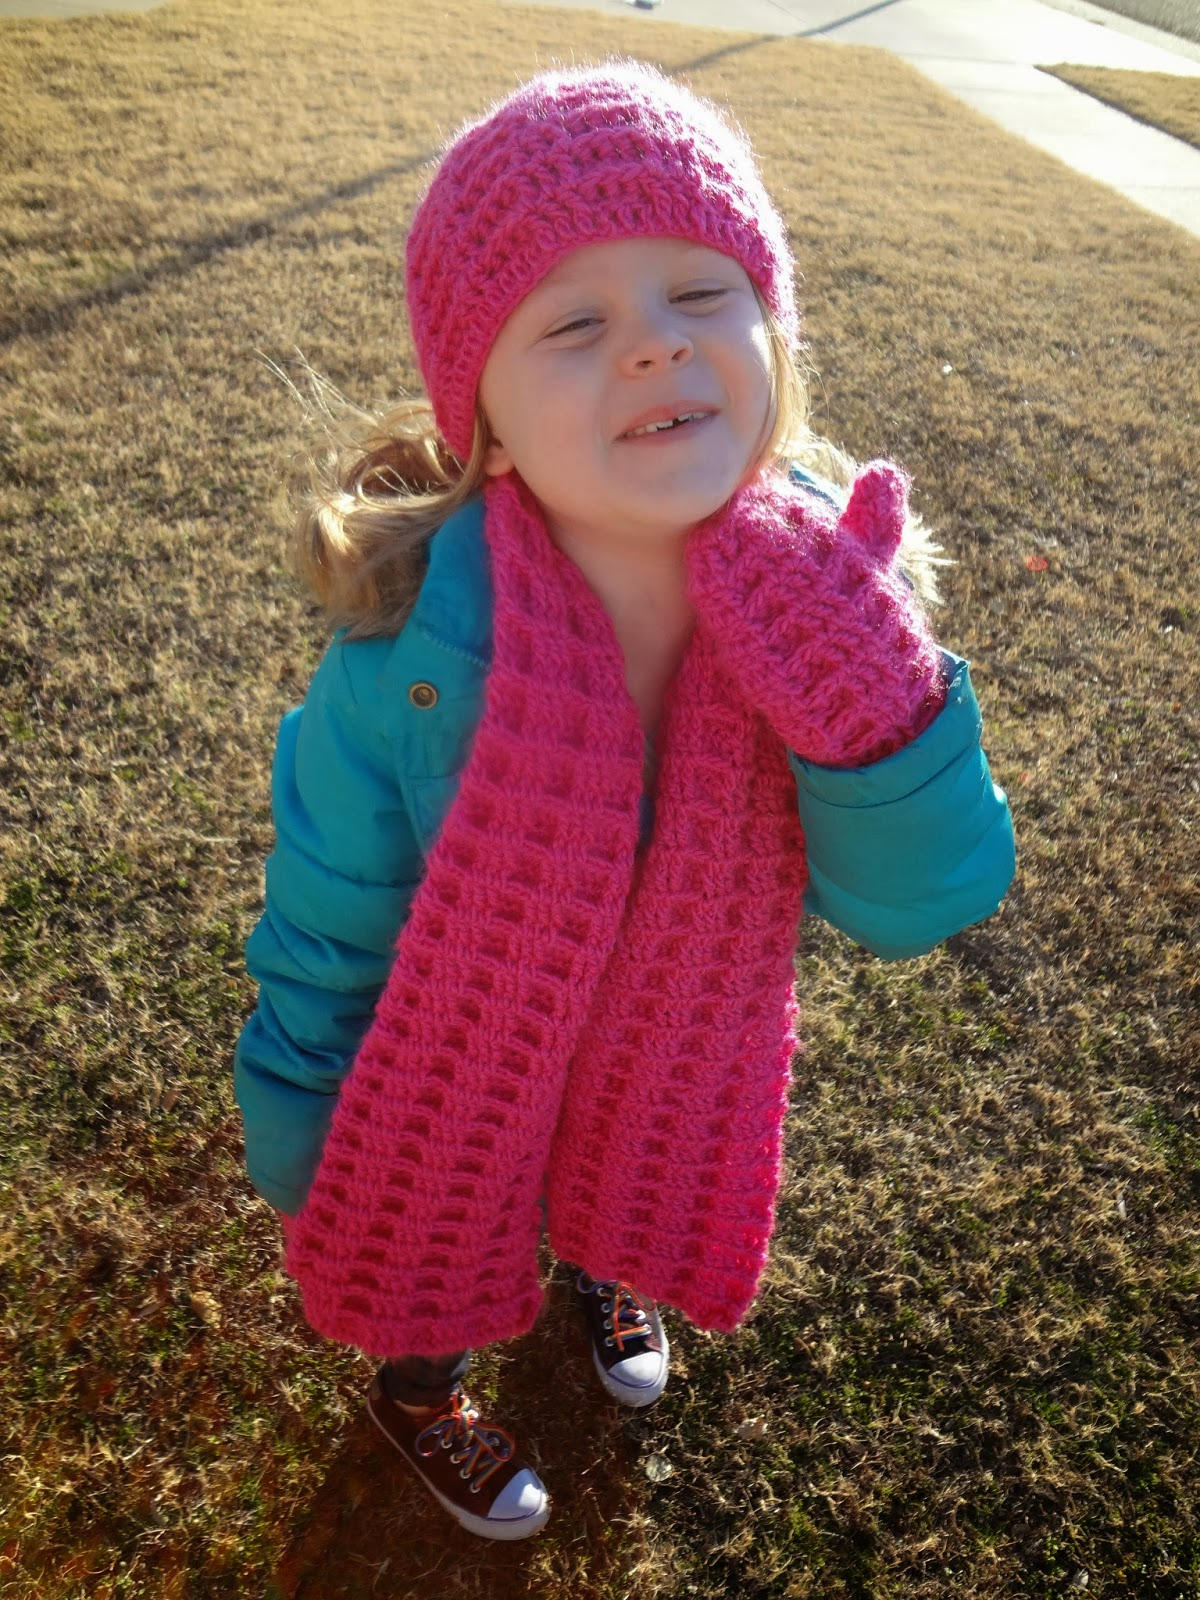 Hot pink crochet hat, scarf, and mitten set. Free pattern from Banana Moon Studio!